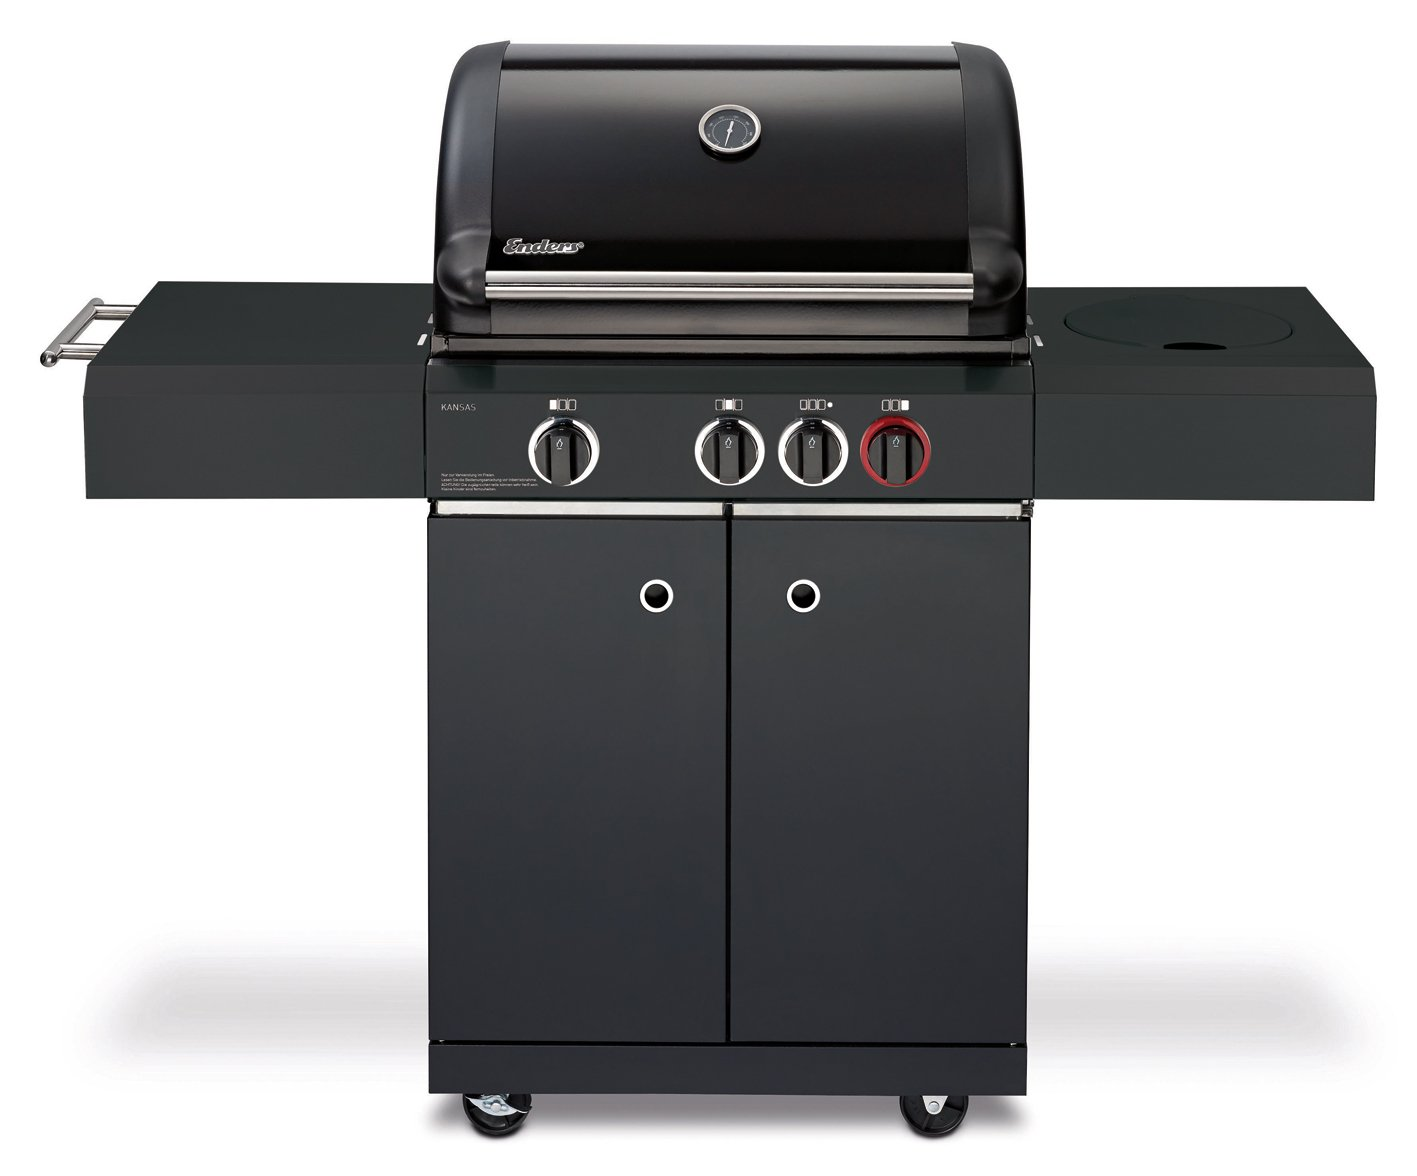 Enders Gasgrill Reinigung : Enders gasgrill kansas black k turbo amazon garten